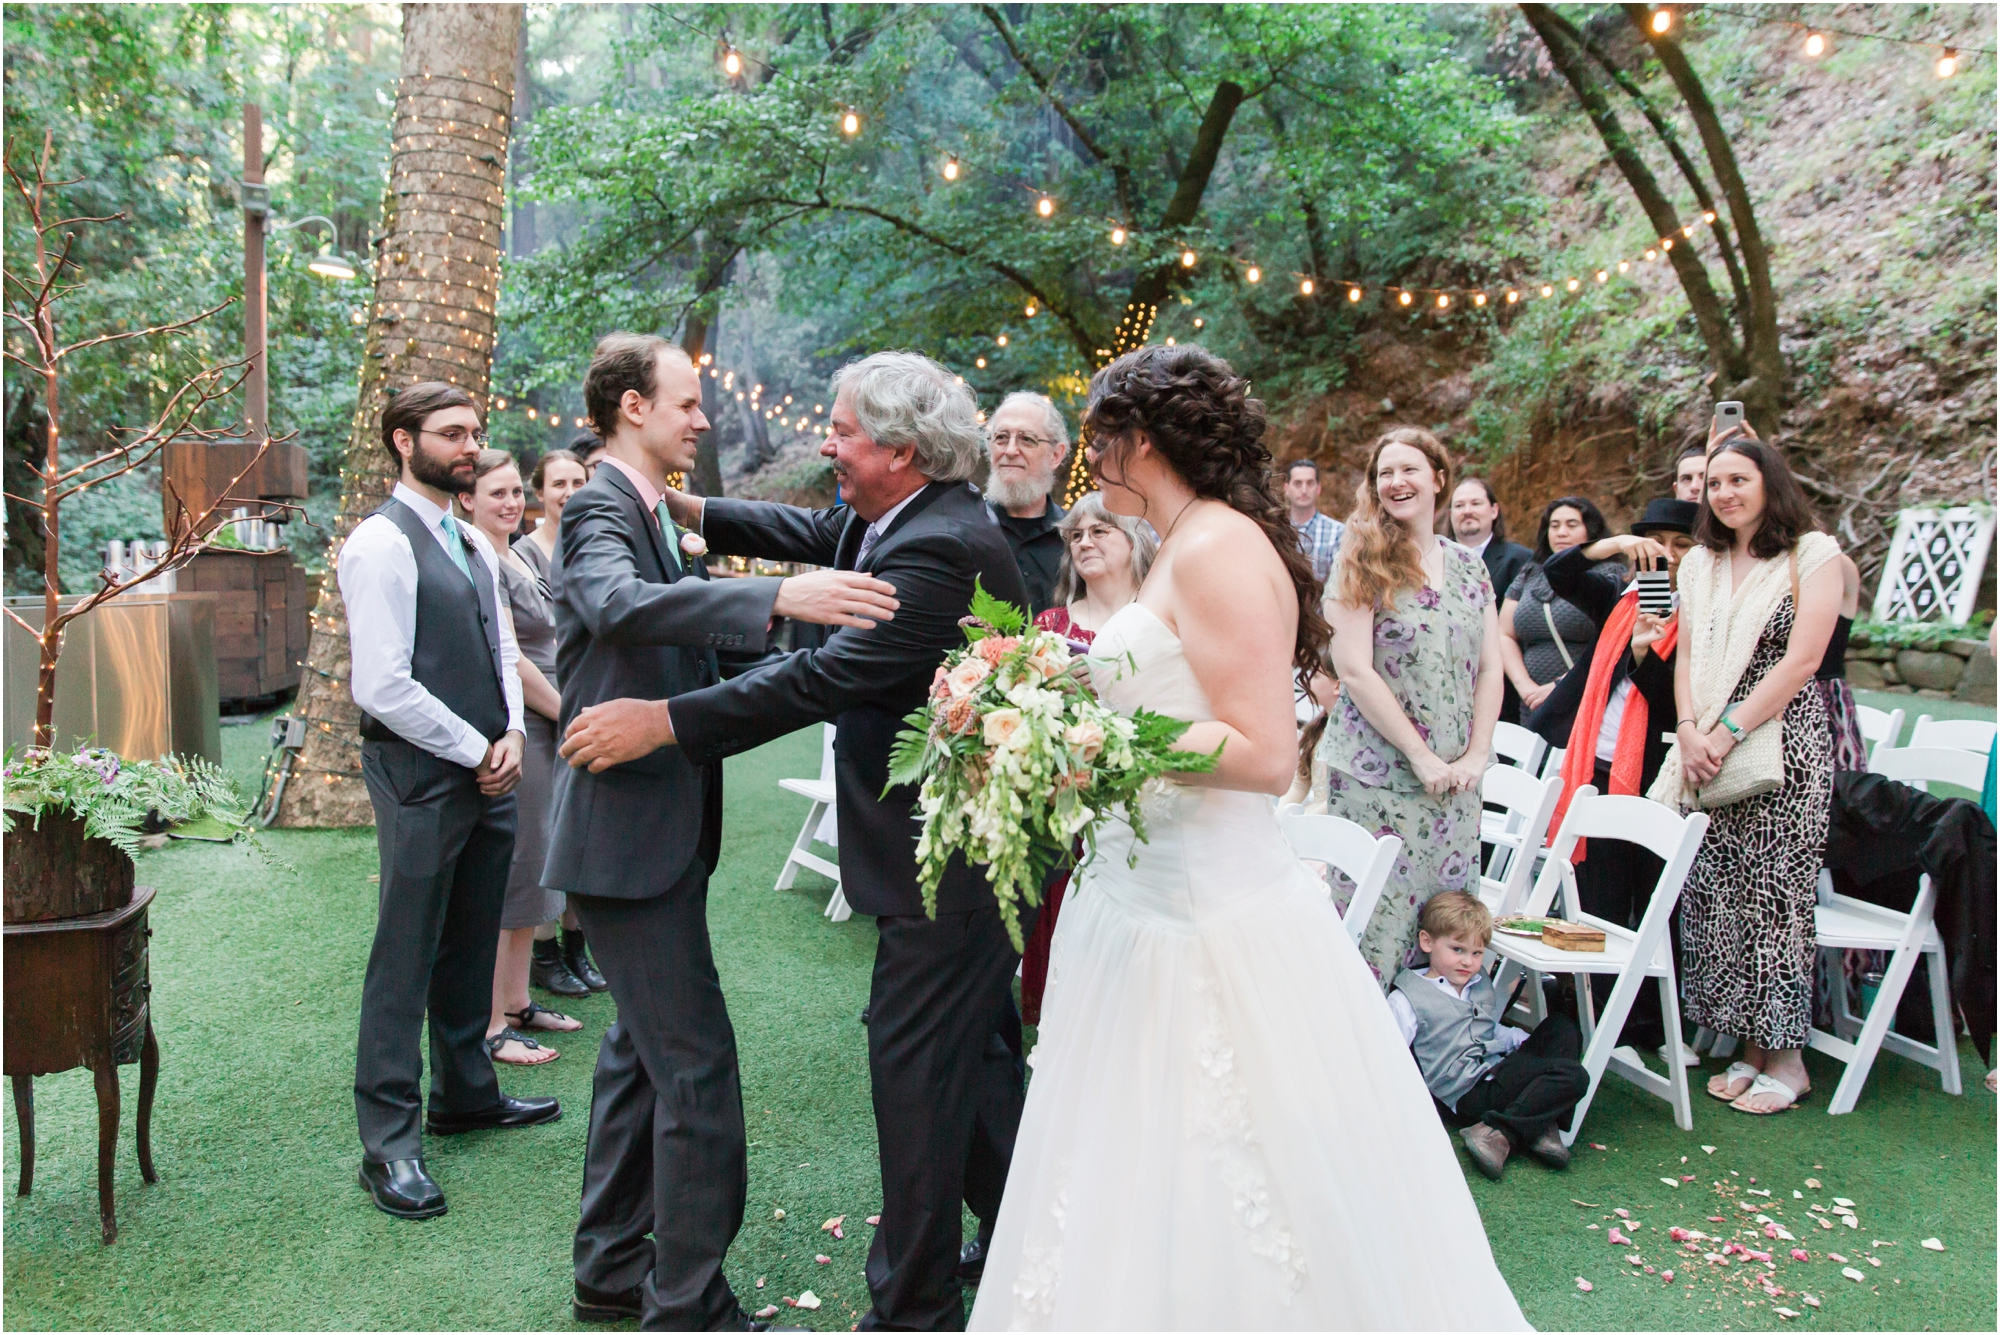 Saratoga Springs wedding pictures by Briana Calderon Photography_1886.jpg